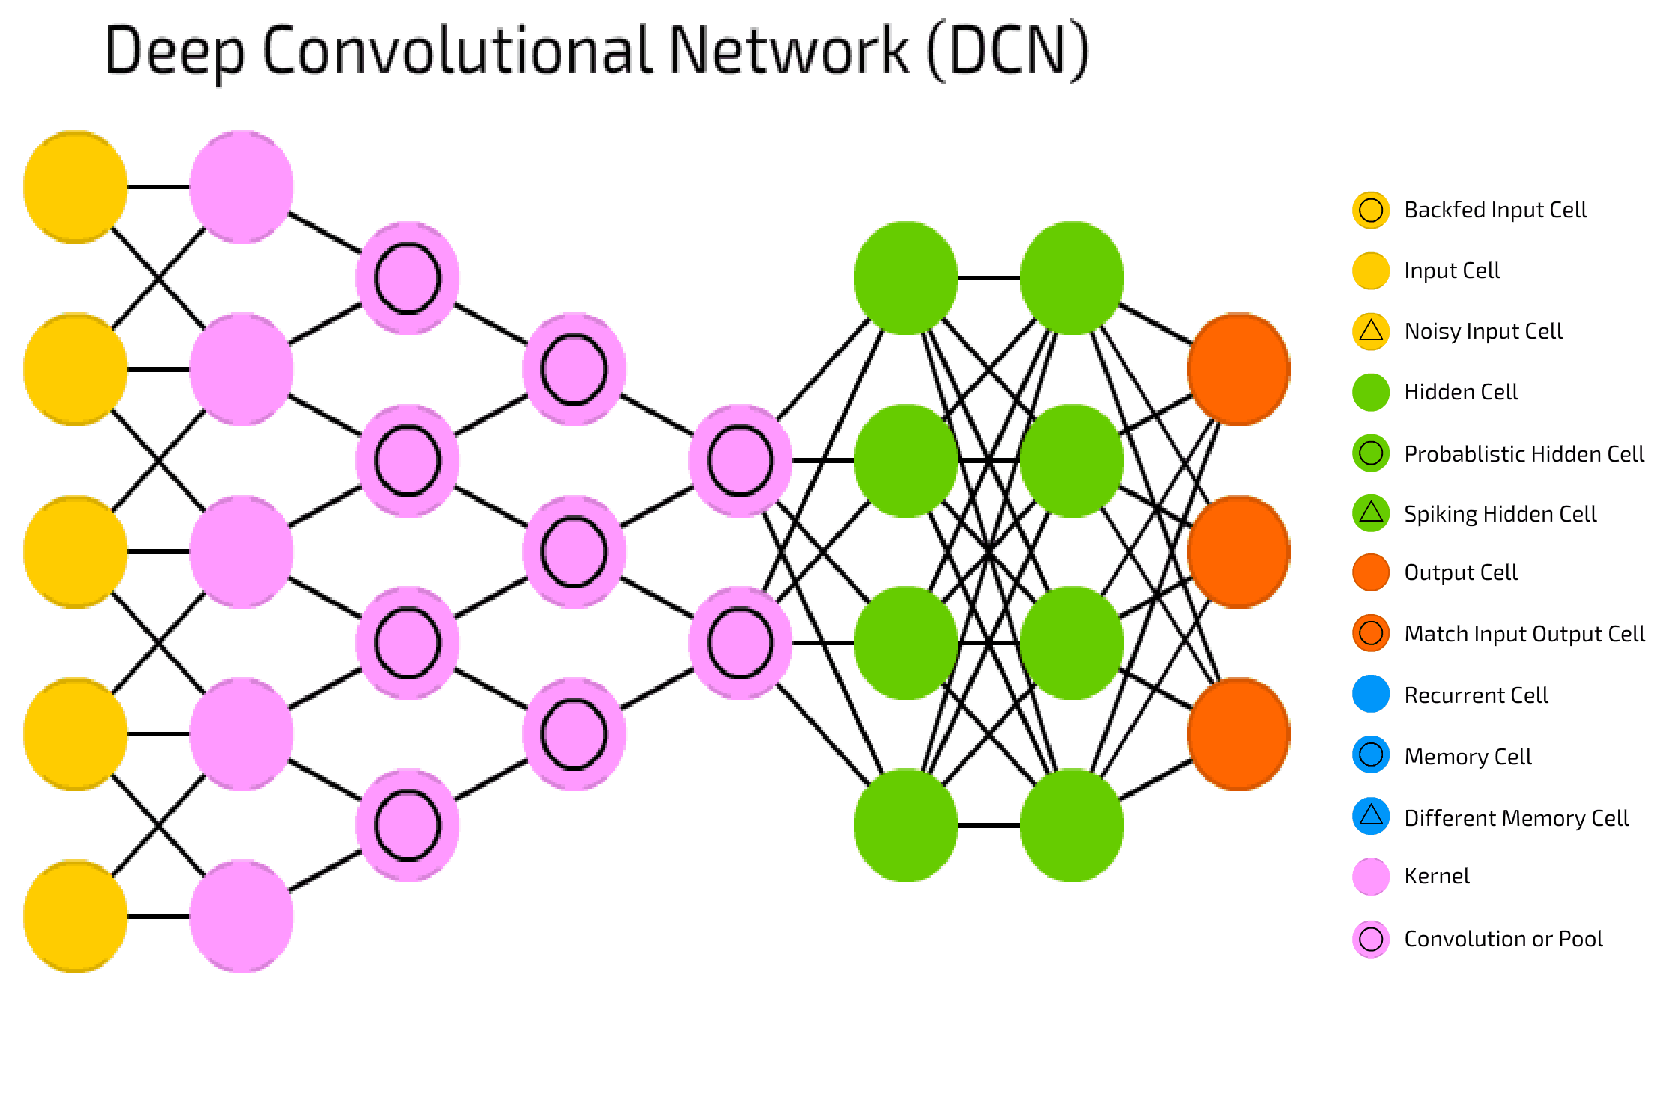 Deep Convolutional Neural Network